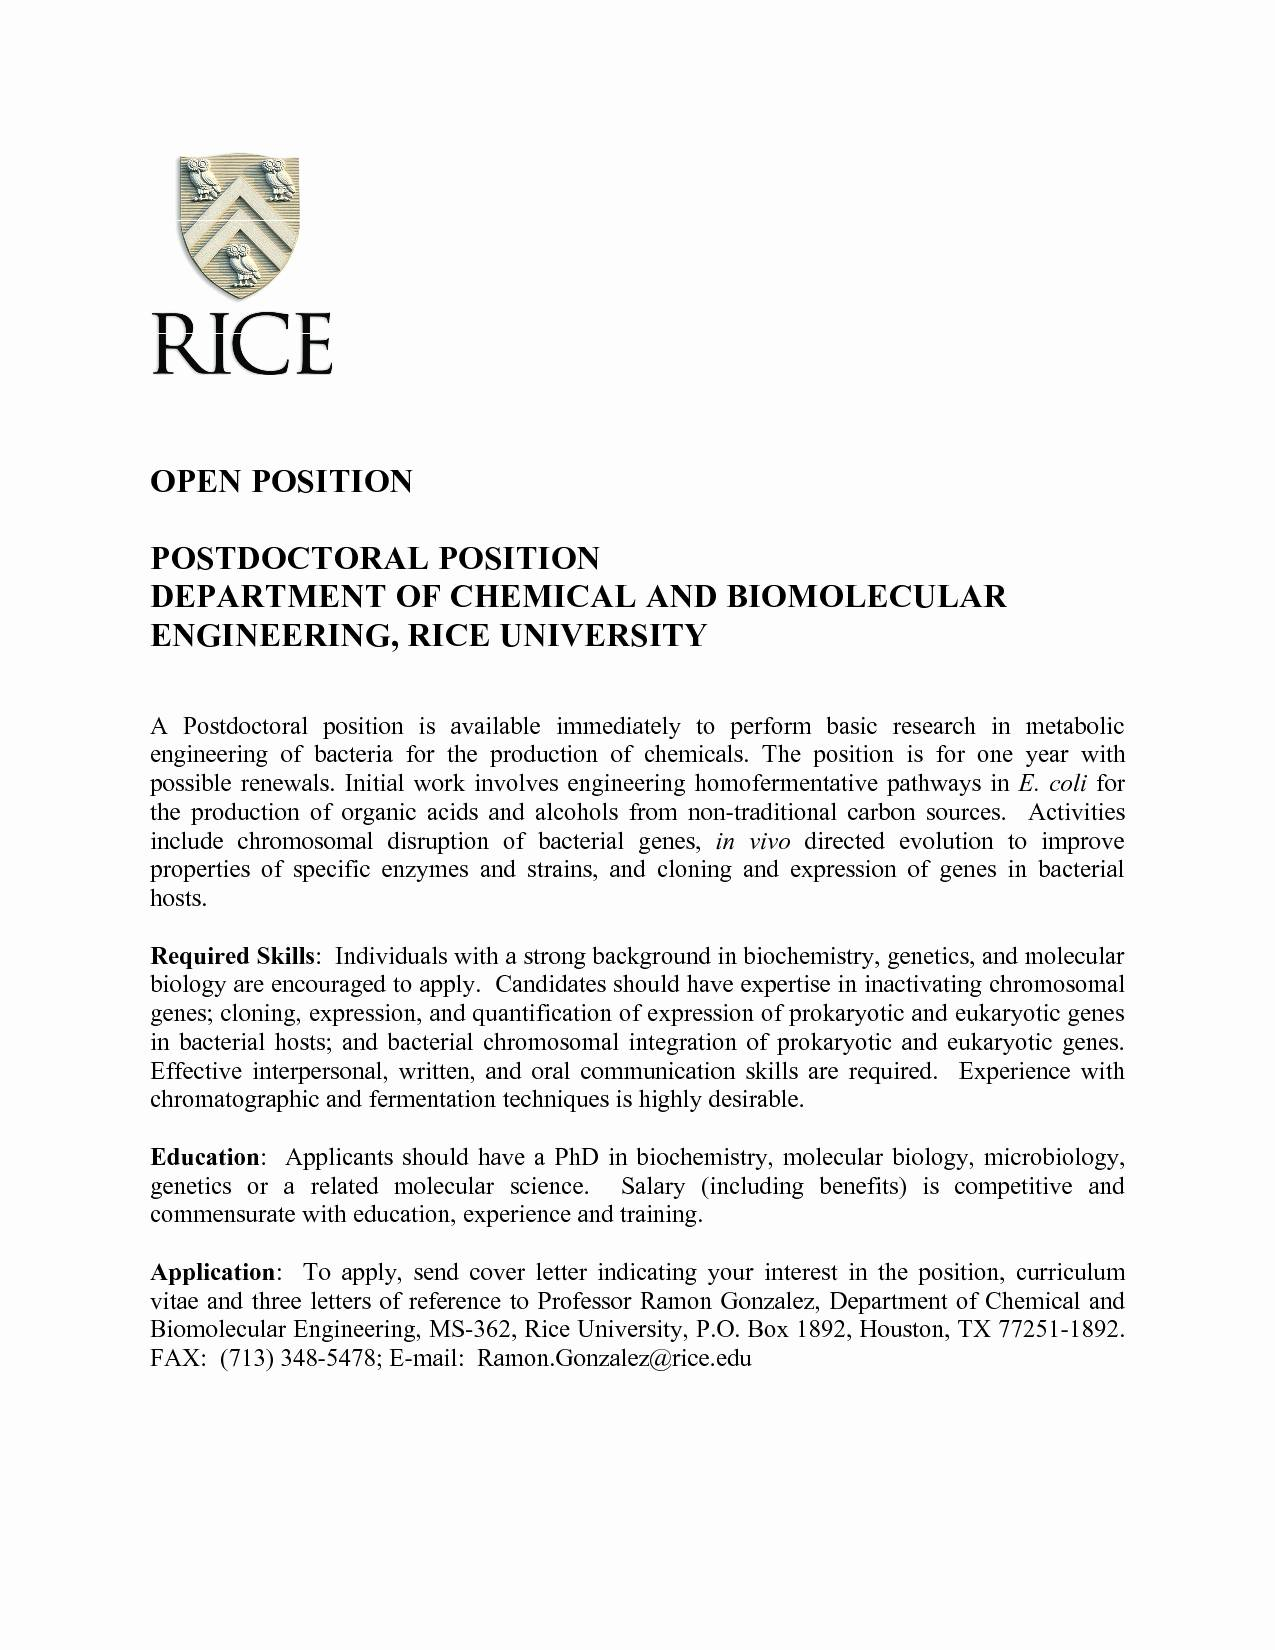 Postdoc Cover Letter Template - Postdoc Cover Letter Sample Biology Awesome 30 Luxury Cover Letter